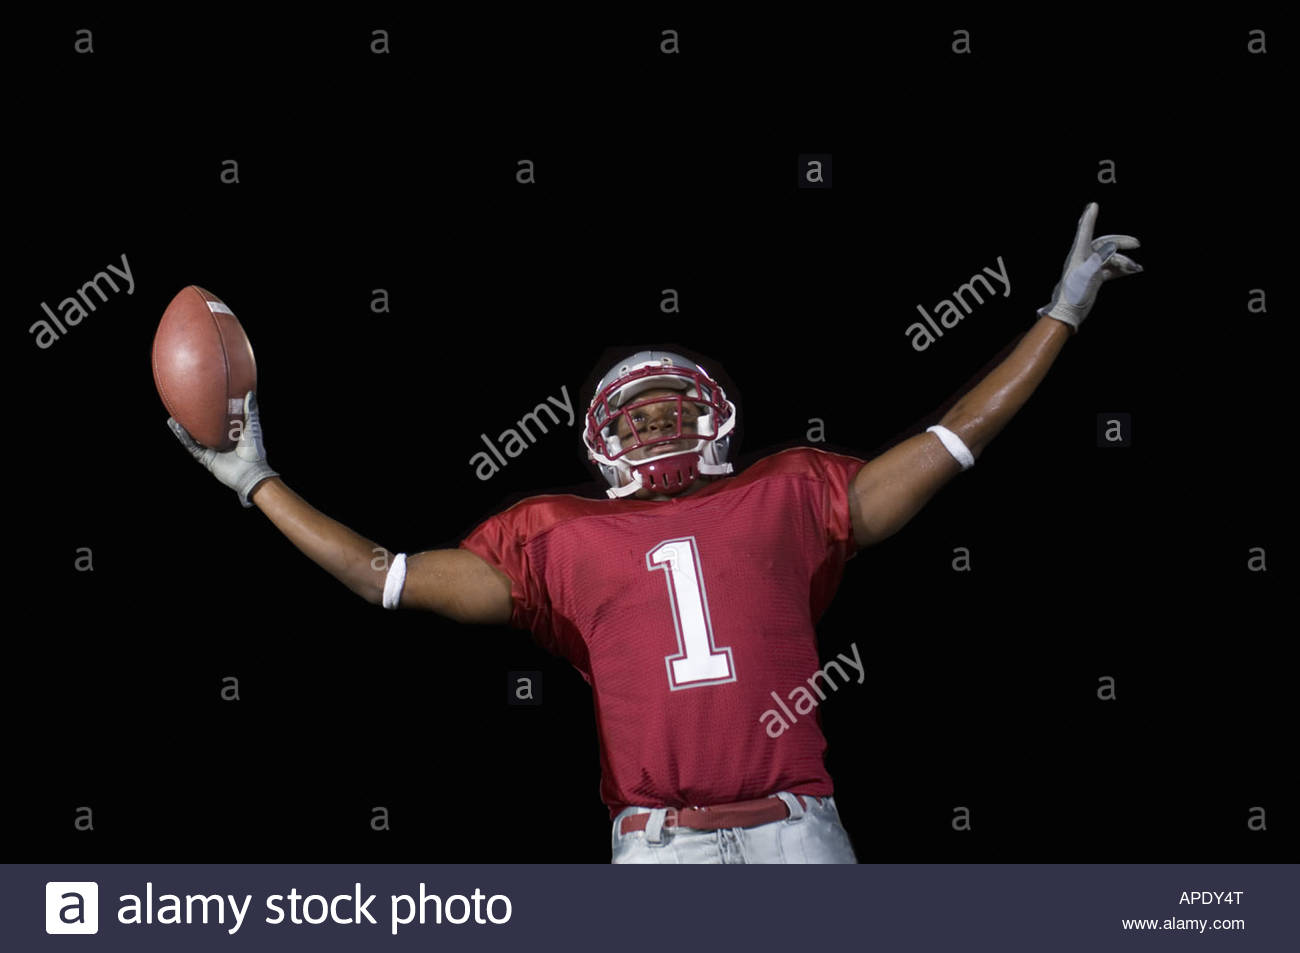 African football player with arms outstretched - Stock Image